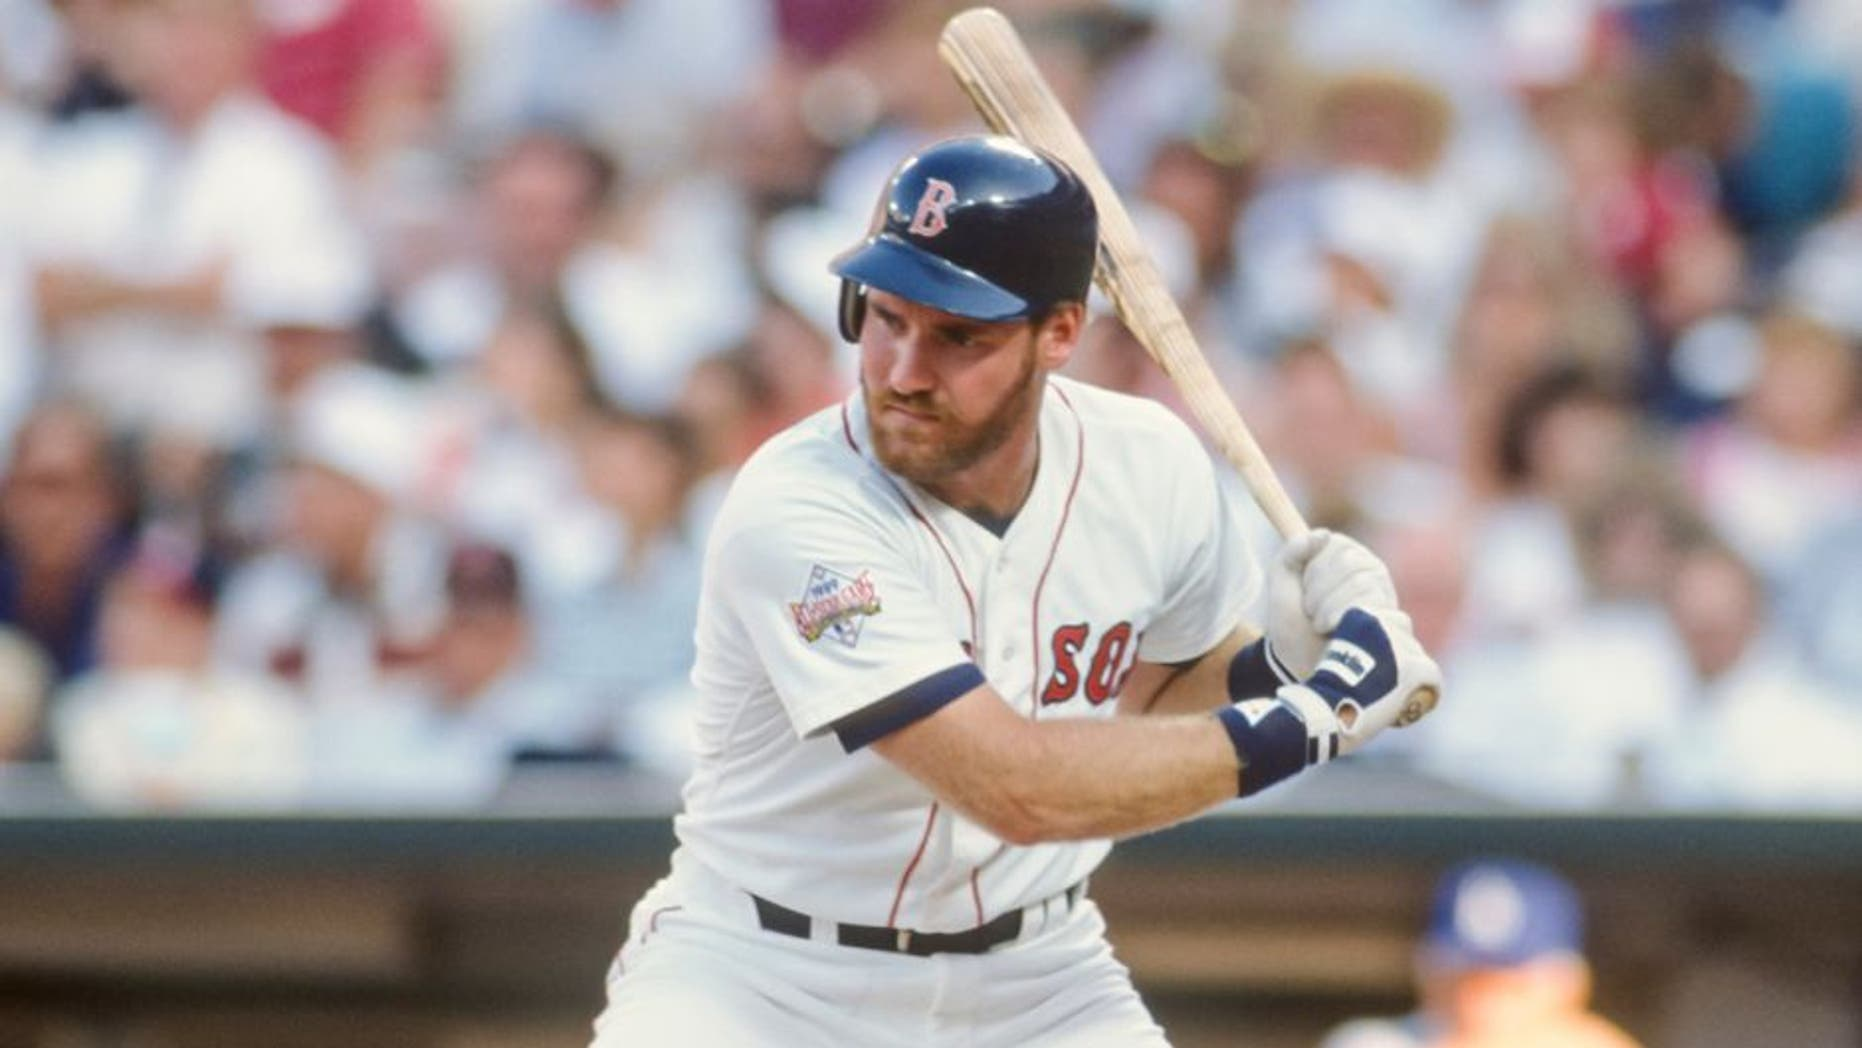 OAKLAND - JULY 1989: Wade Boggs of the Boston Red Sox plays in a Major League Baseball game against the Oakland A's in July 1989 at the Oakland-Alameda County Coliseum in Oakland, California. (Photo by David Madison/Getty Images) *** Local Caption *** Wade Boggs